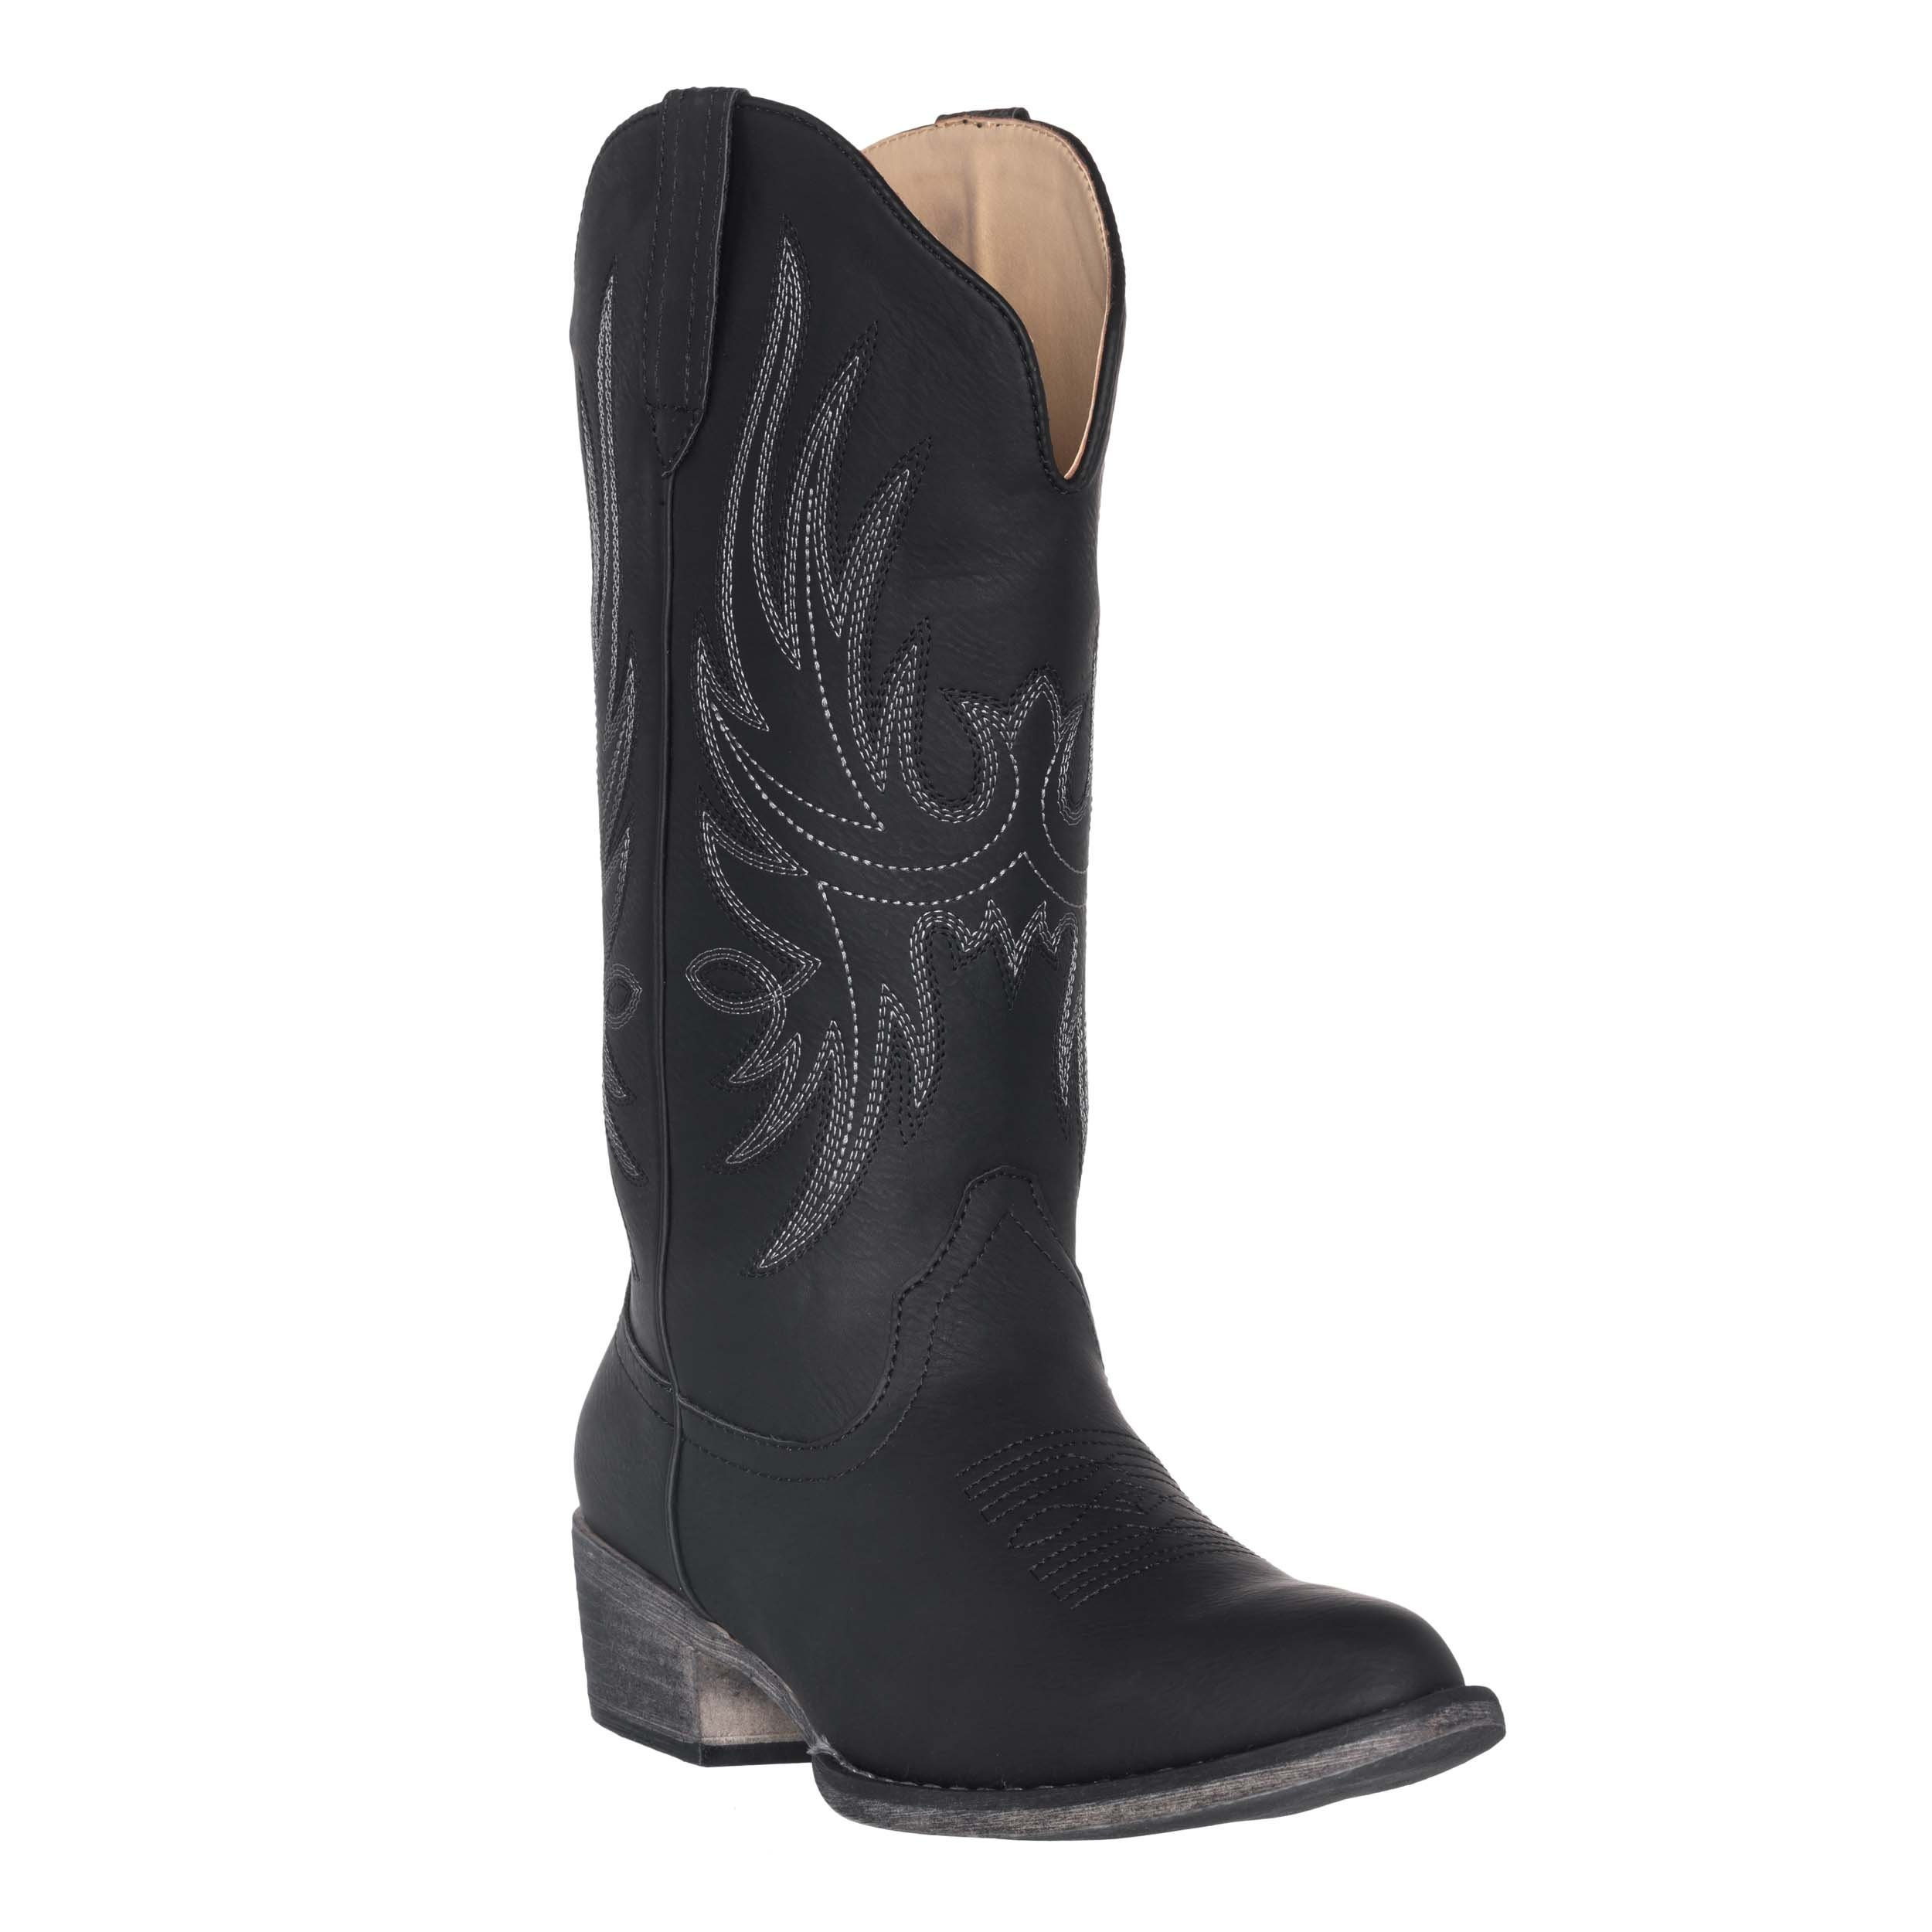 Women's Western Cowgirl Cowboy Boot | Black Dallas Pointed Toe by Silver Canyon